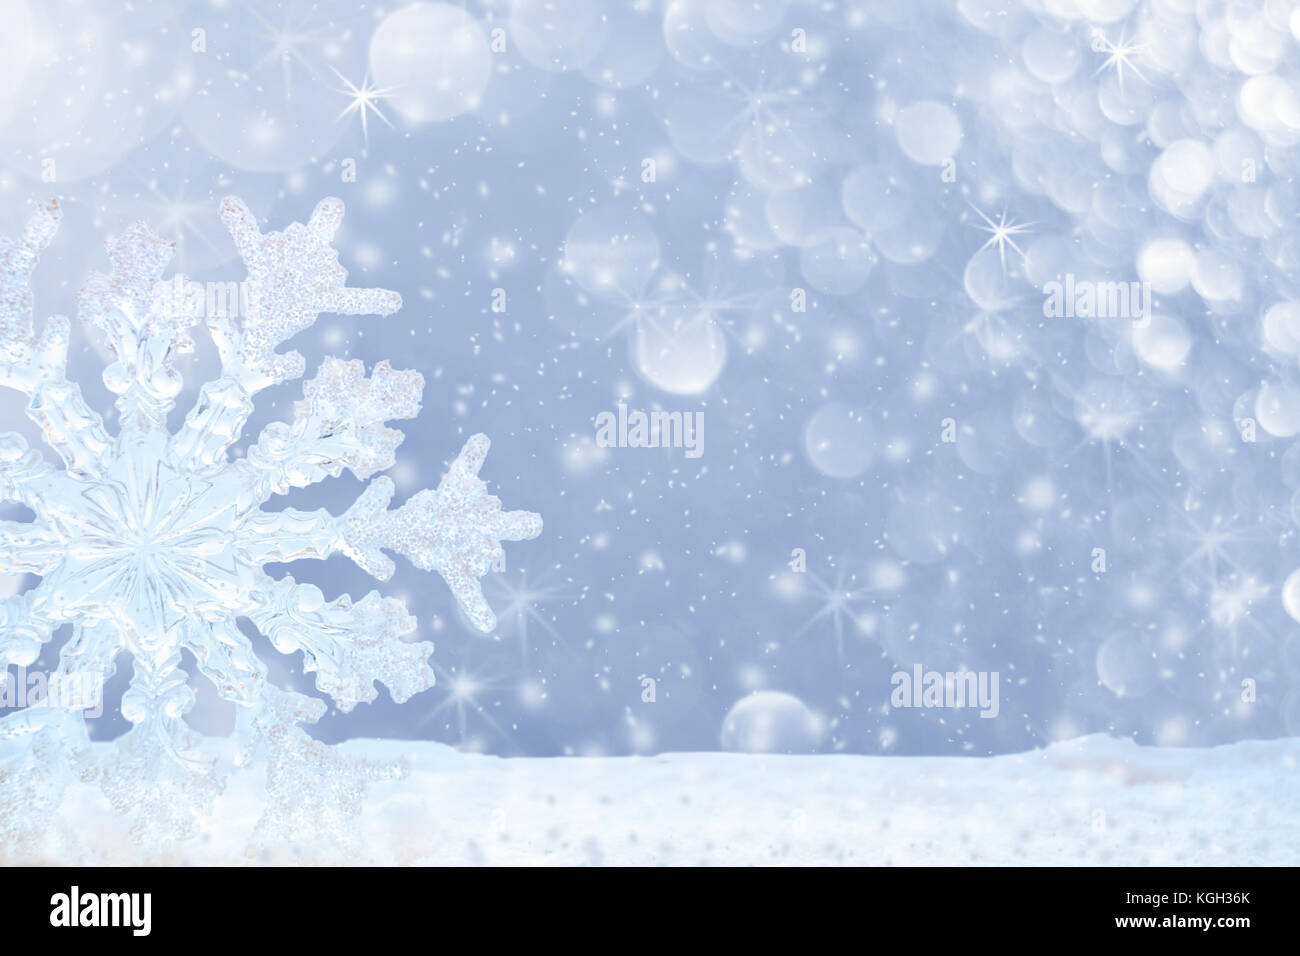 Big transparent snowflake in snow and beautiful bokeh with asterisks and snowfall. - Stock Image